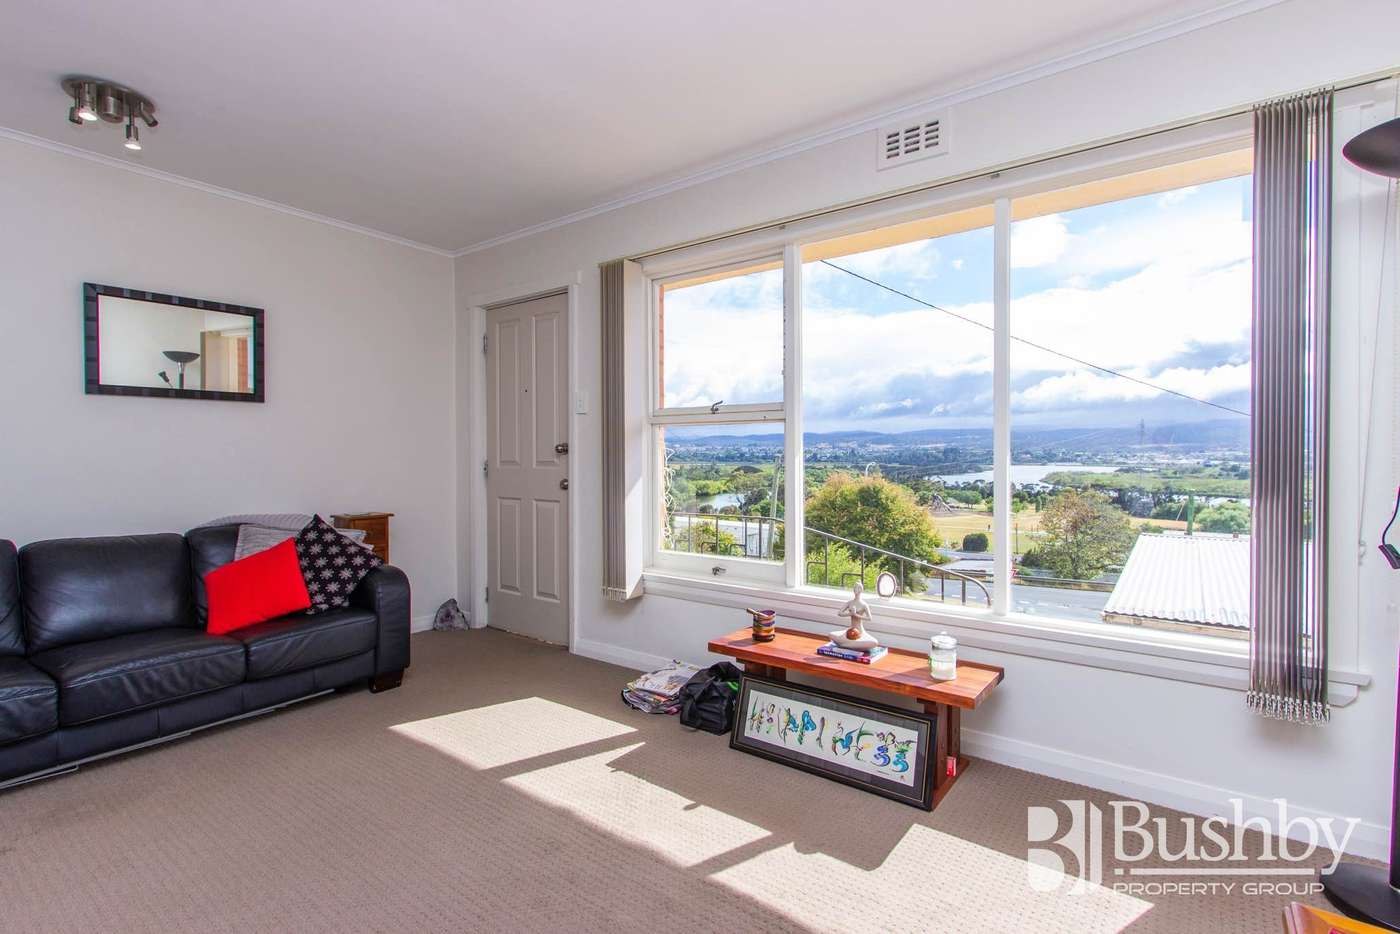 Fifth view of Homely apartment listing, 105 Forest Road, Trevallyn TAS 7250